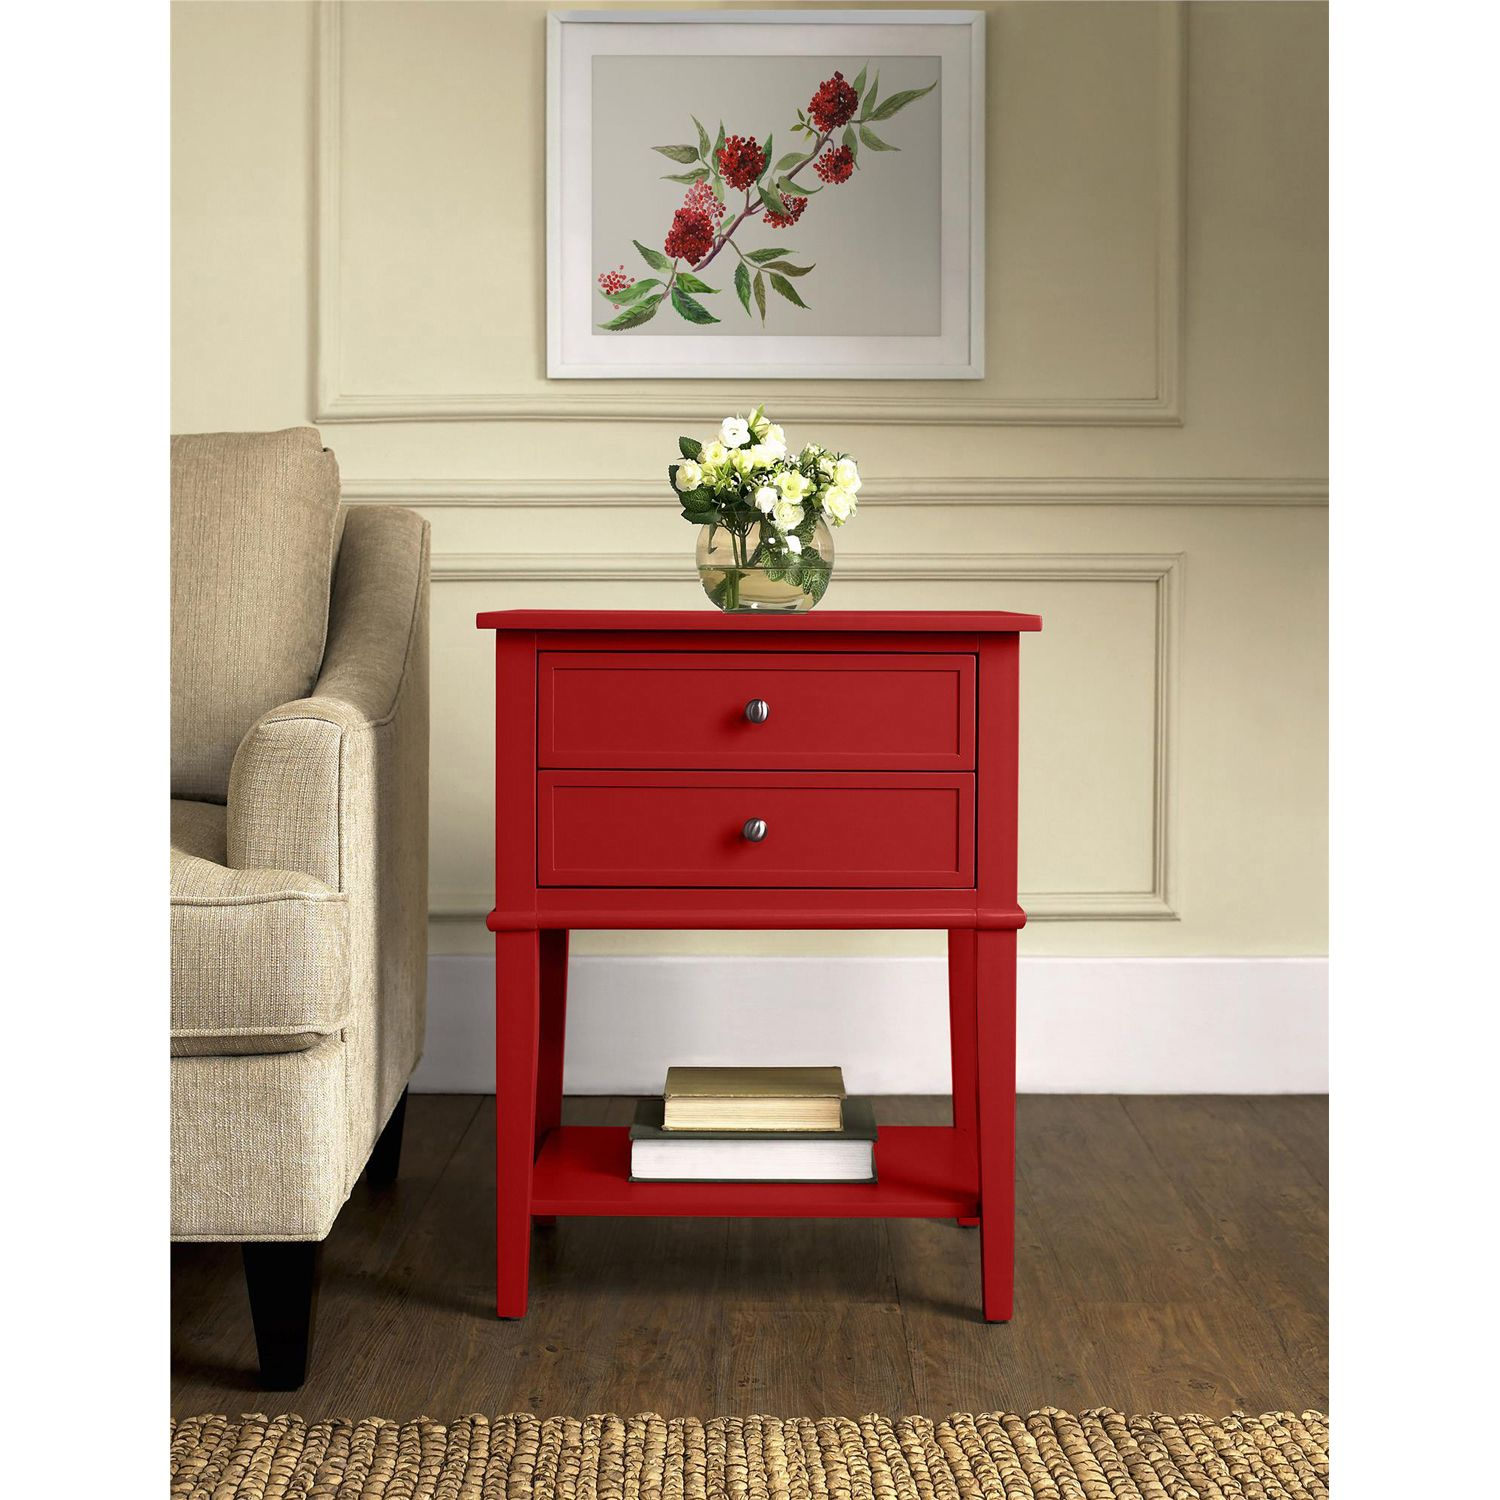 cottage hill red drawer accent table products furniture small drum shaped side next lamps homemade coffee plans kidney top ryobi lamp tables for living room uttermost end nautical